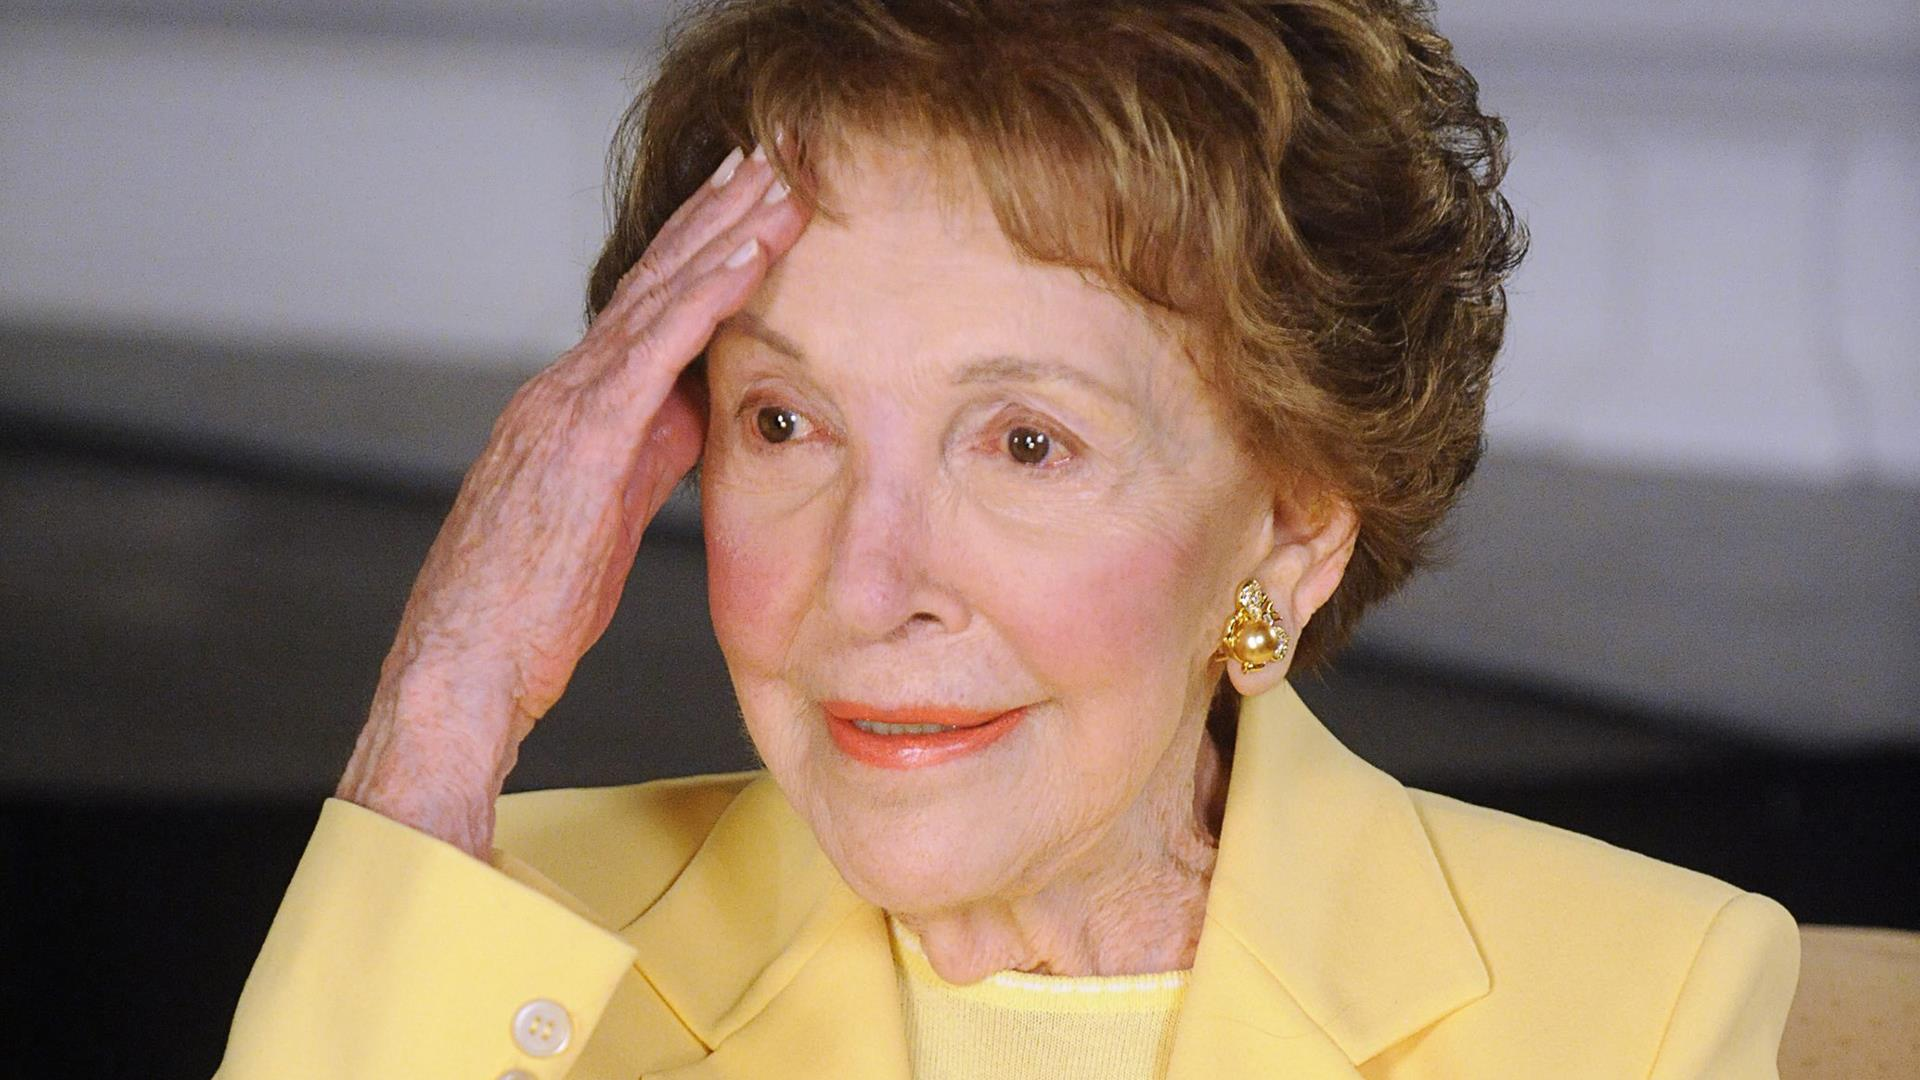 nancy reagan When nancy reagan died on sunday at age 94, she left behind a legacy as one of the most influential and controversial first ladies in american history.